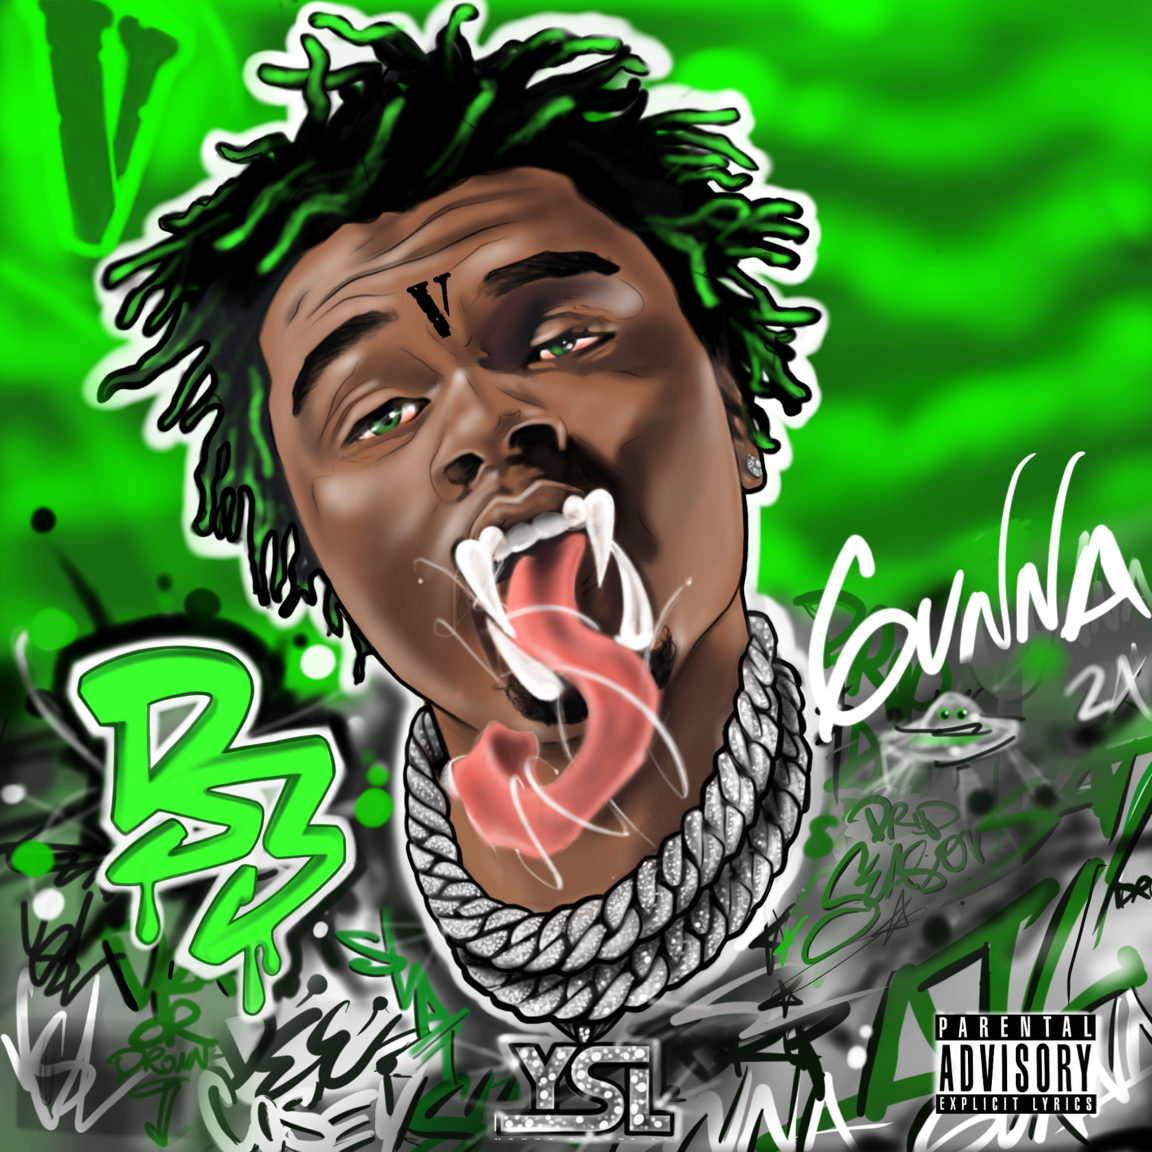 YSL-Signee Gunna Shares Drip Season 3, Ft. Young Thug, Metro Boomin, Lil Yachty, Lil Uzi Vert, and More